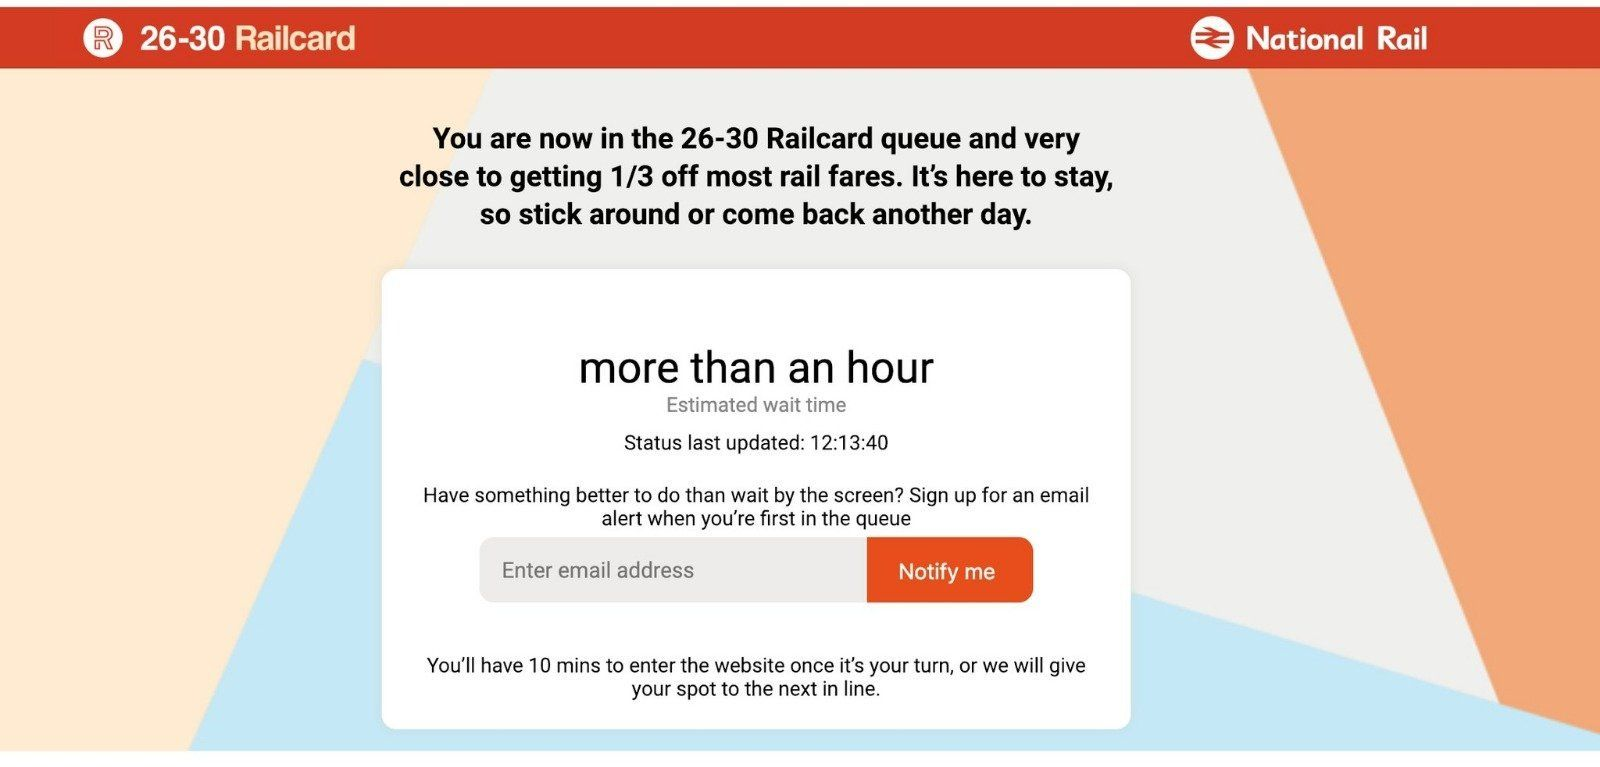 Chris Grayling 'Totally Incapable Of Delivering Anything On Time' Amid Bungled Millennial Railcard